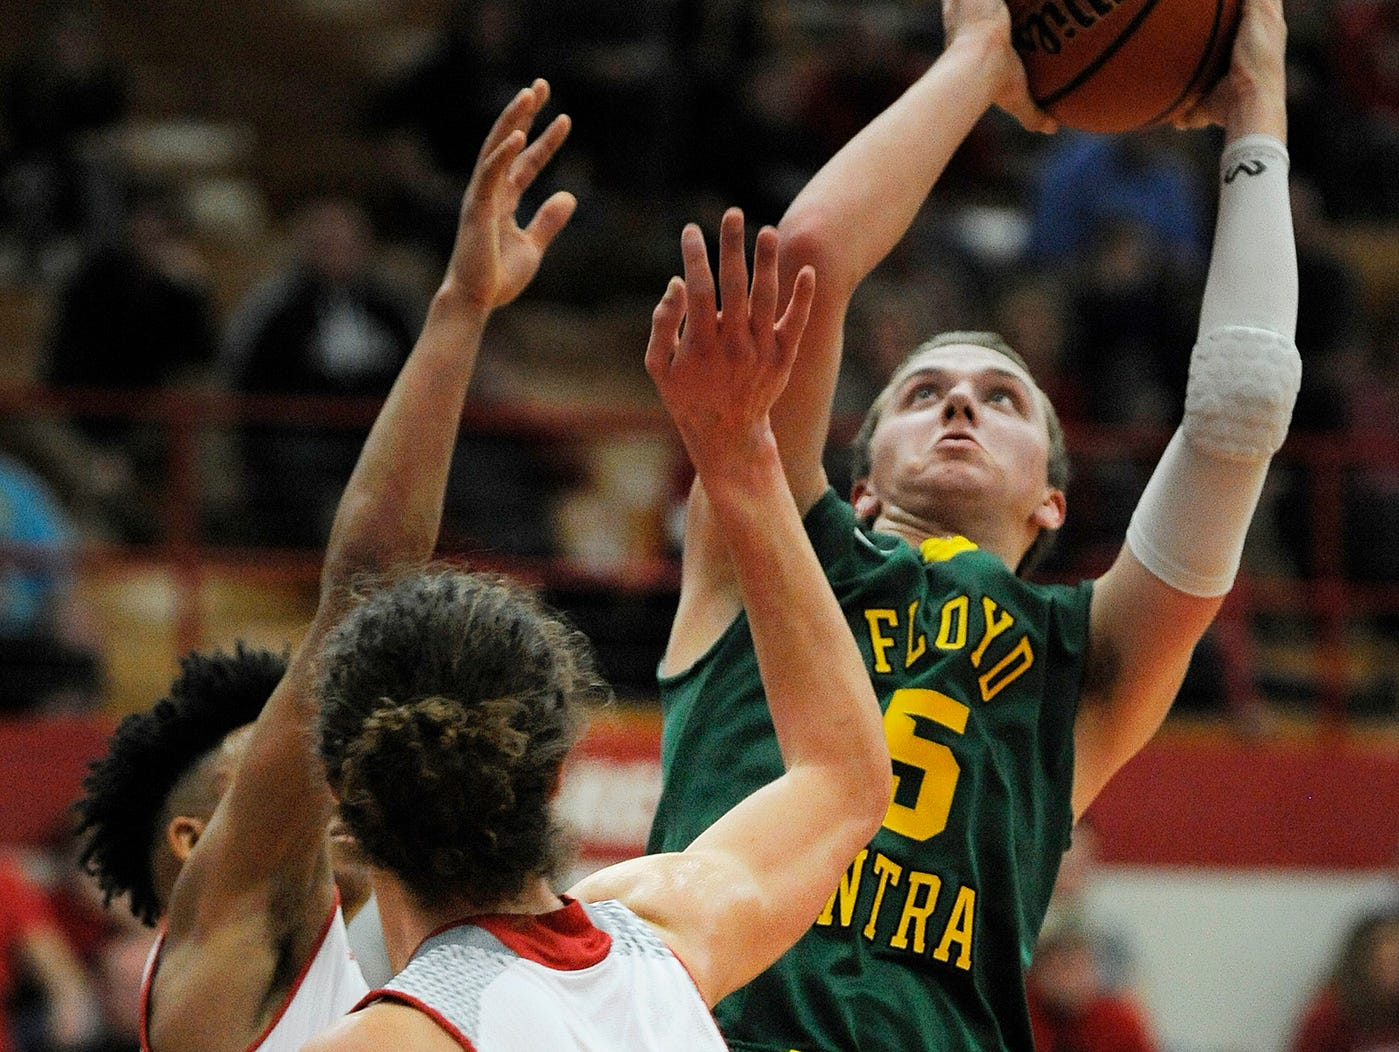 Floyd Central's Tyler Kimm (5) brings down a rebound against Jeffersonville on Friday at Jeffersonville High School.